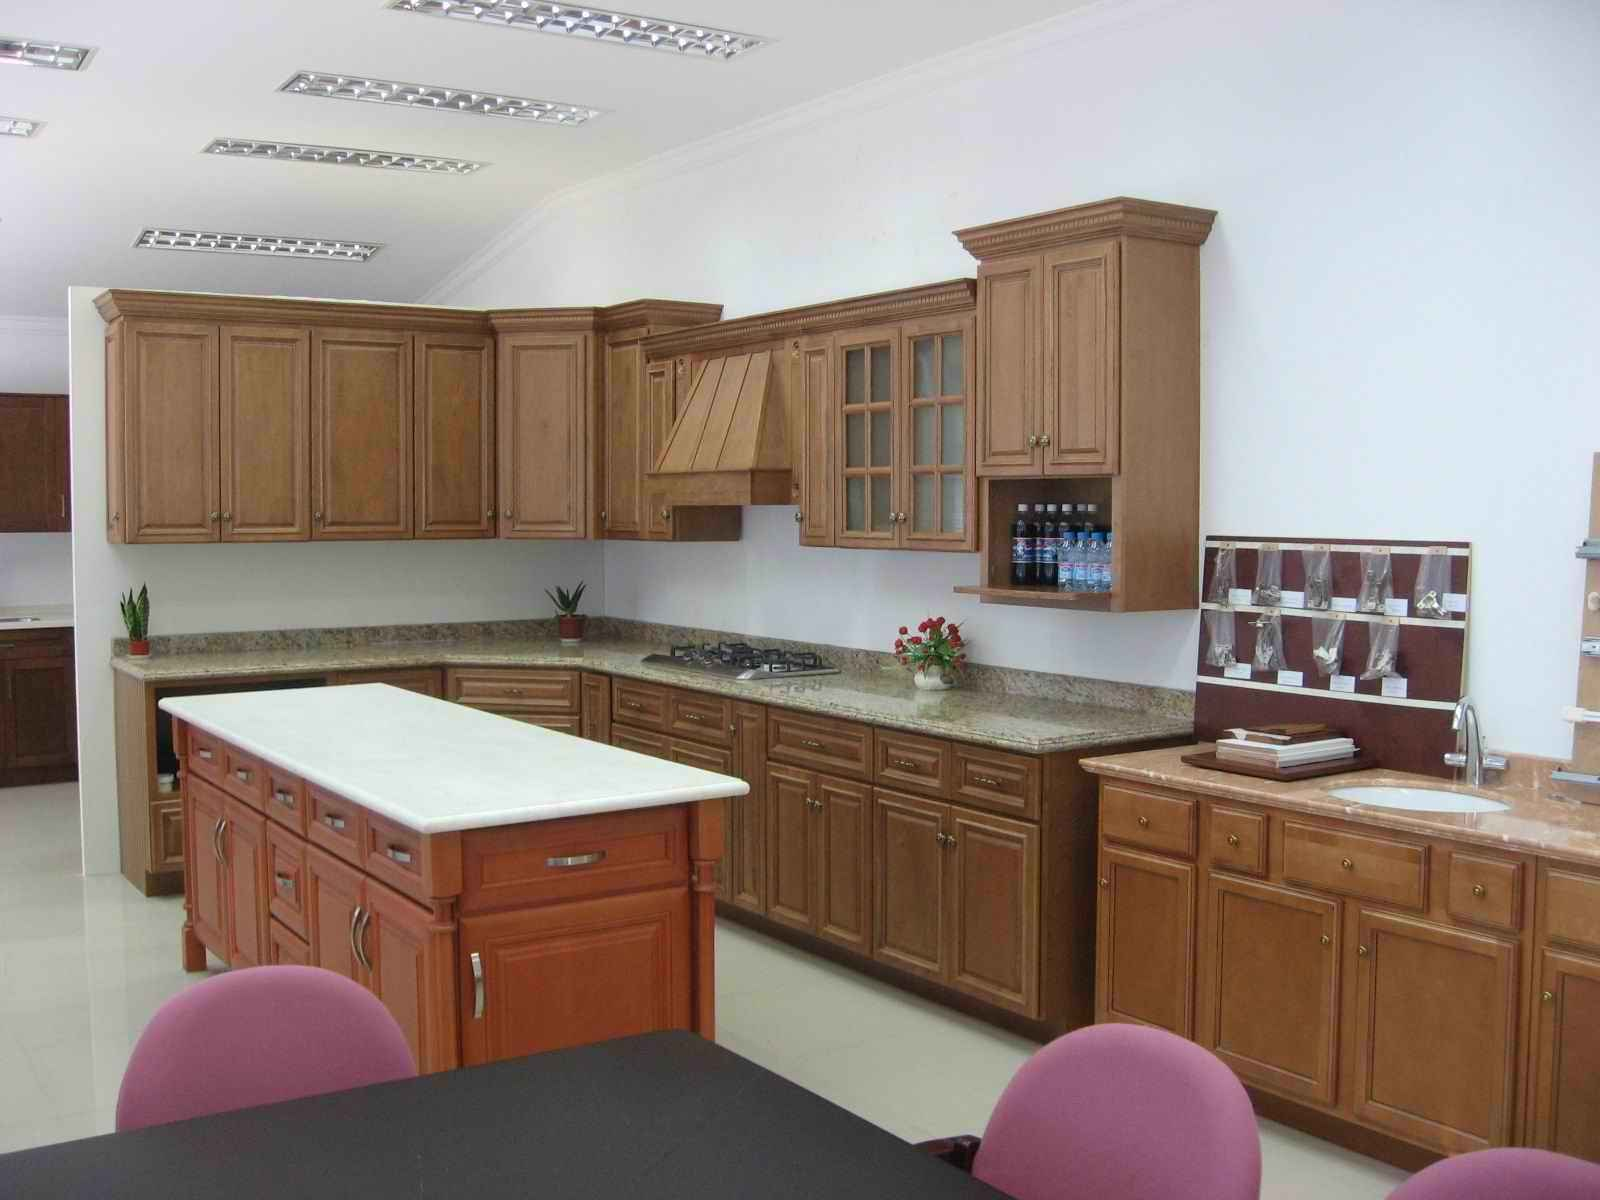 Best Places To Buy Kitchen Cabinets Great Best Place To Buy Kitchen Cabinets 2016